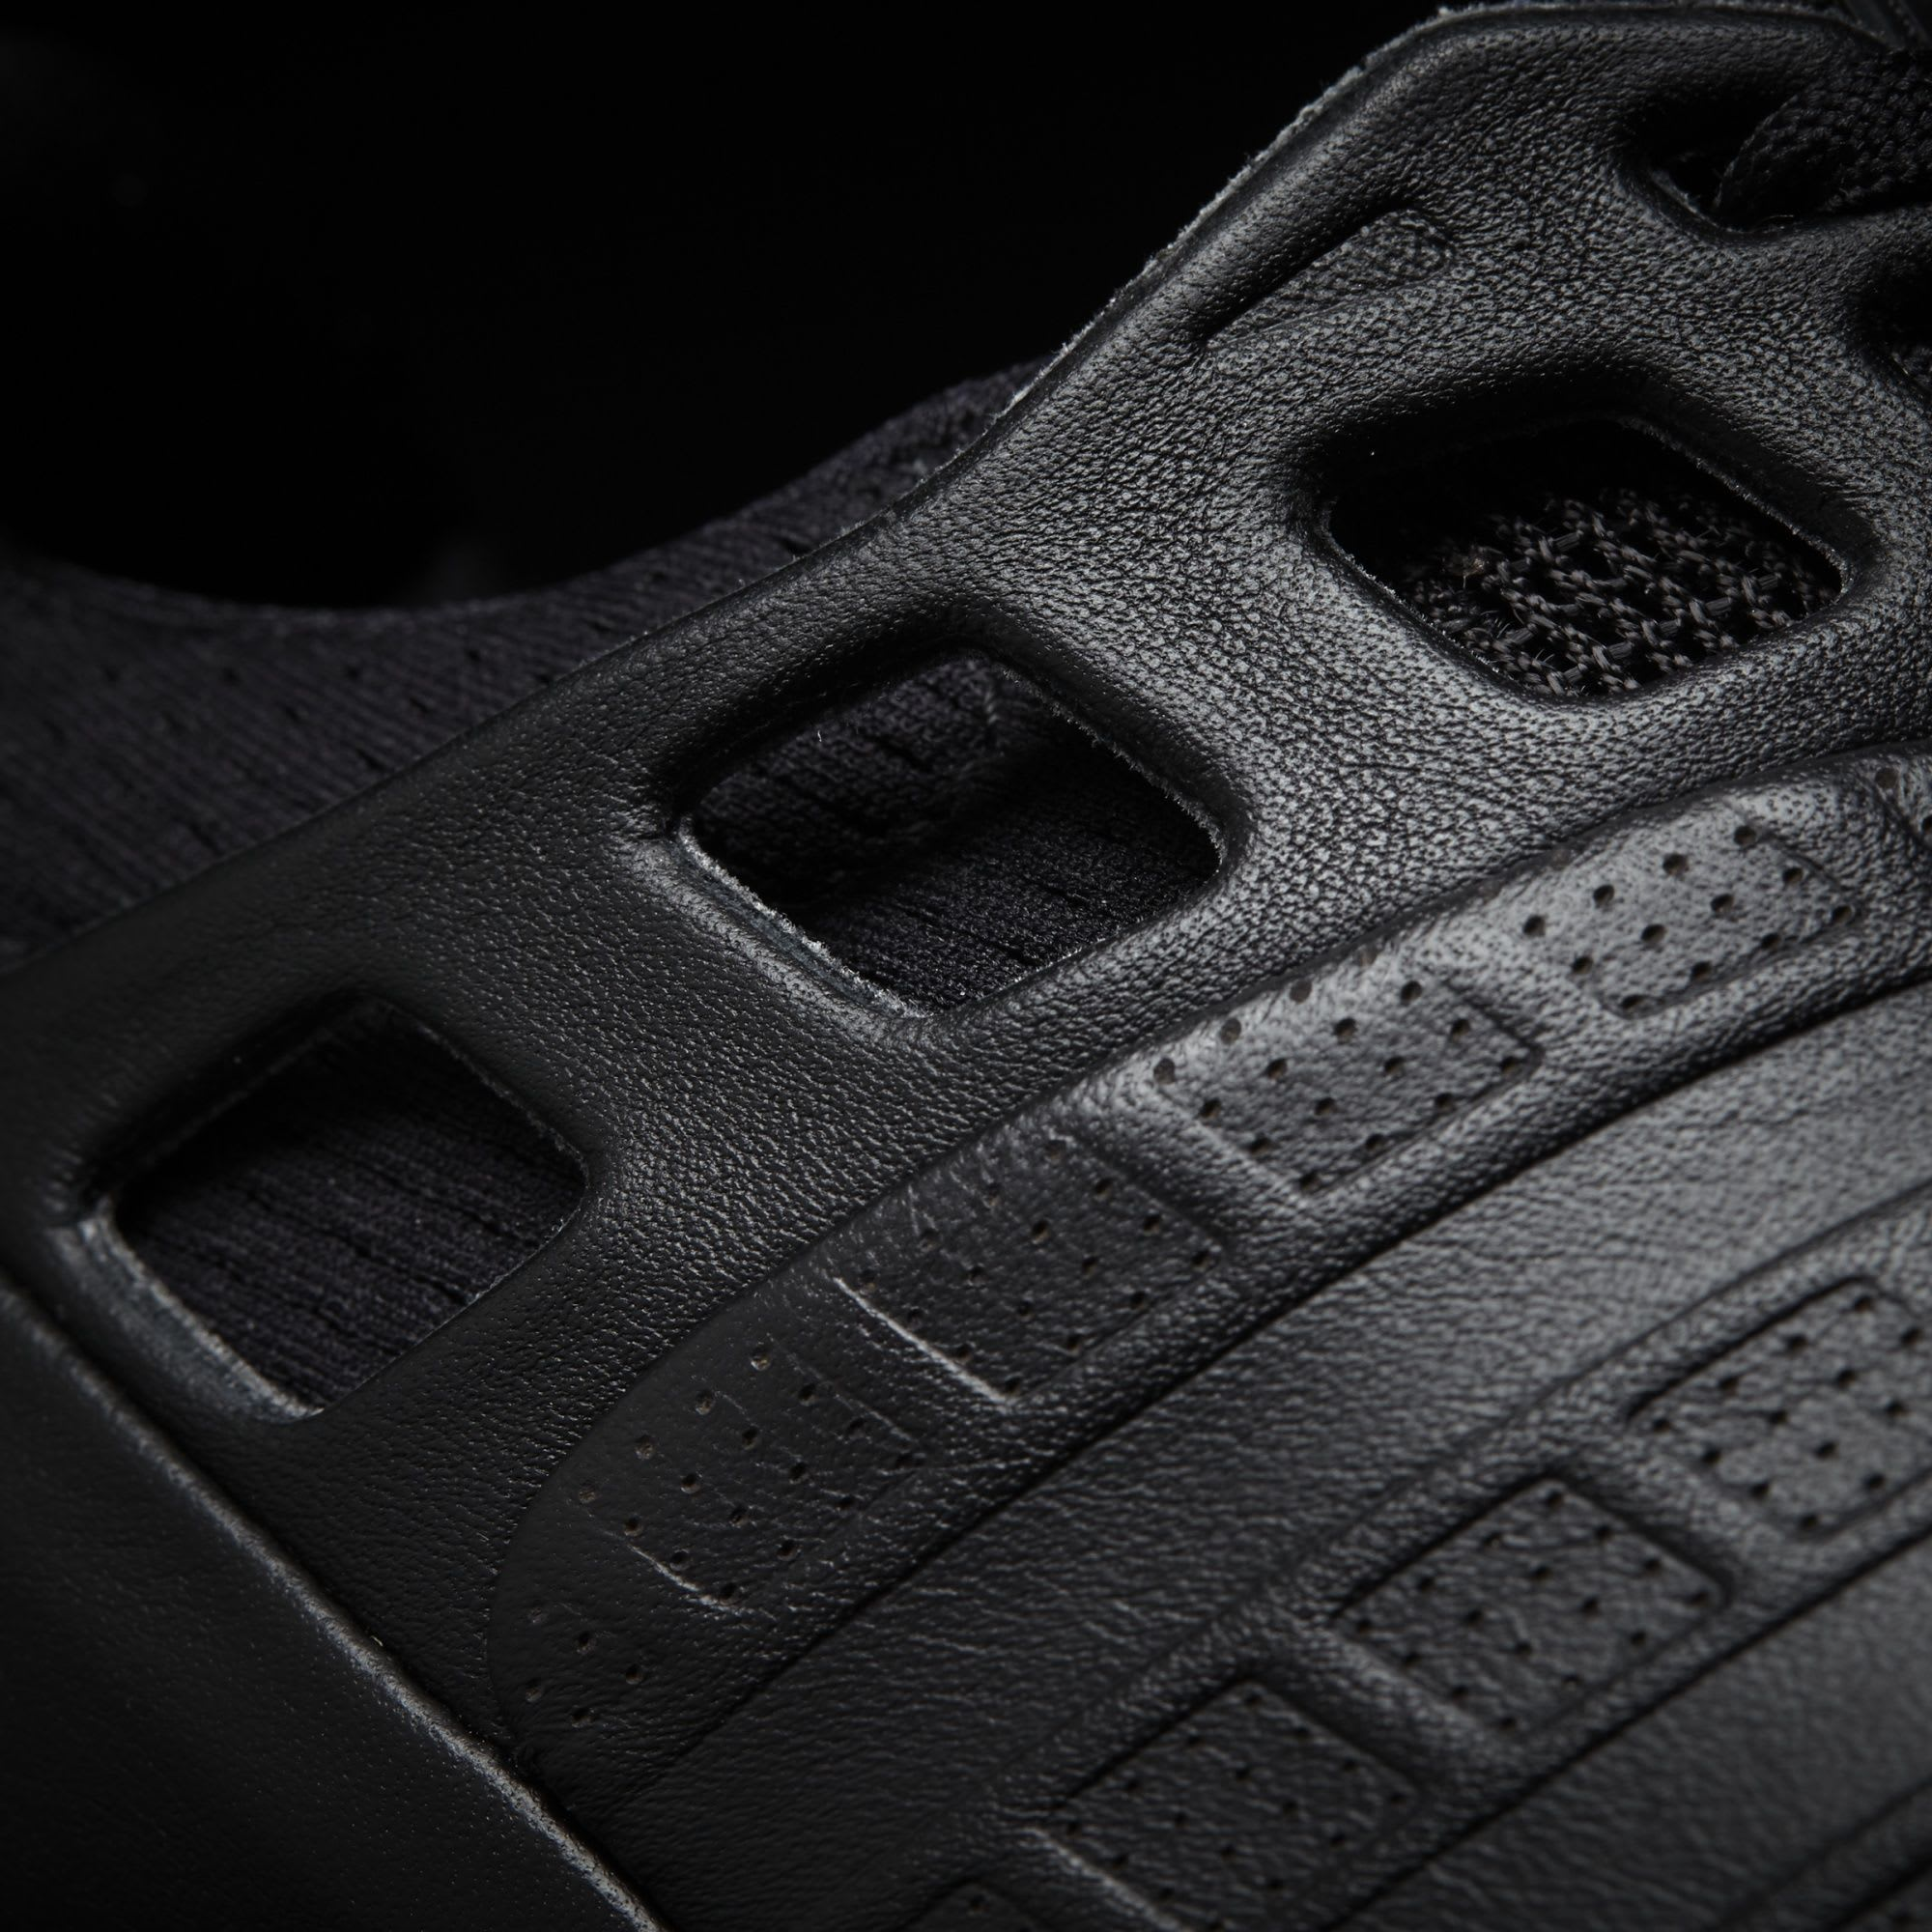 Triple Black Porsche Adidas Ulta Boost BB5537 Upper